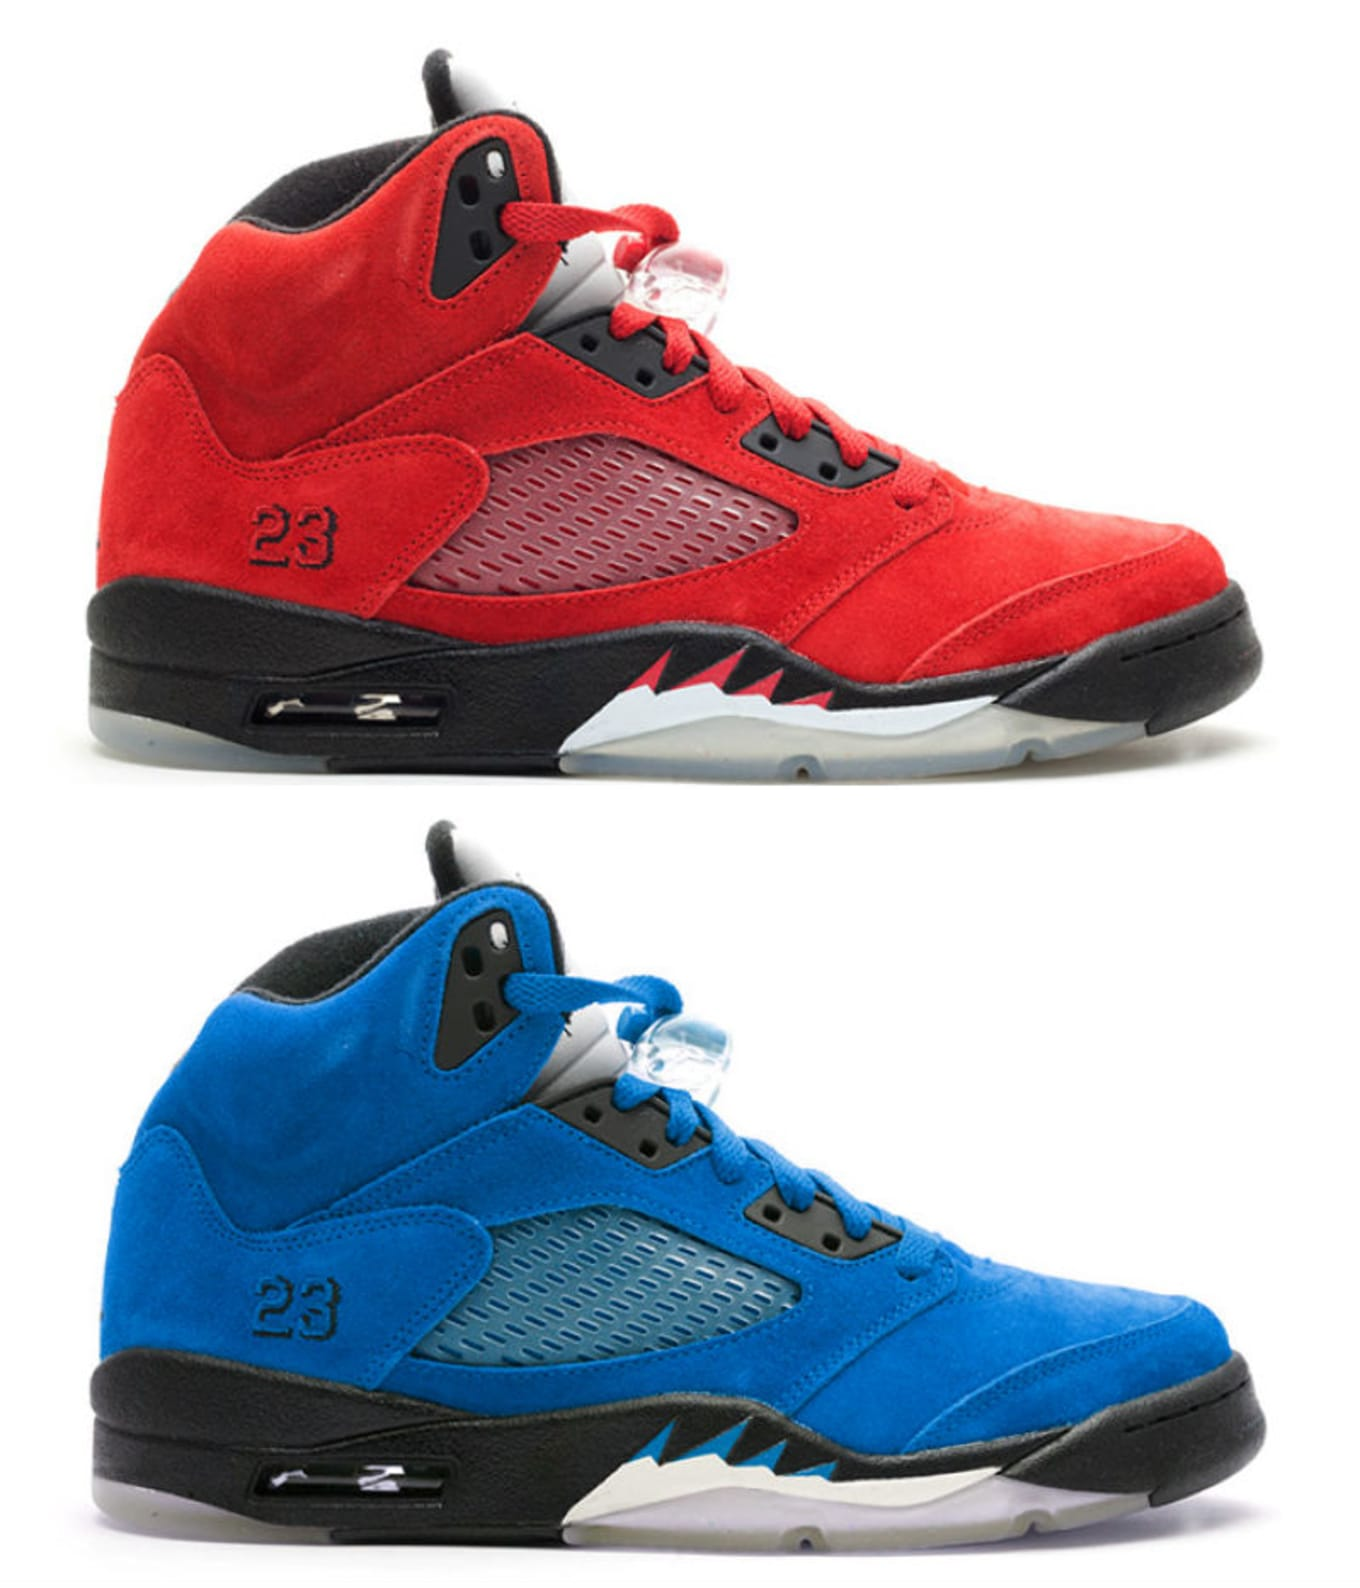 best website 07b9e 5d7fc Air Jordan 5 Retro Red   Blue Suede. Image via Flight Club (Blue is a  Photoshop). While not exactly like the